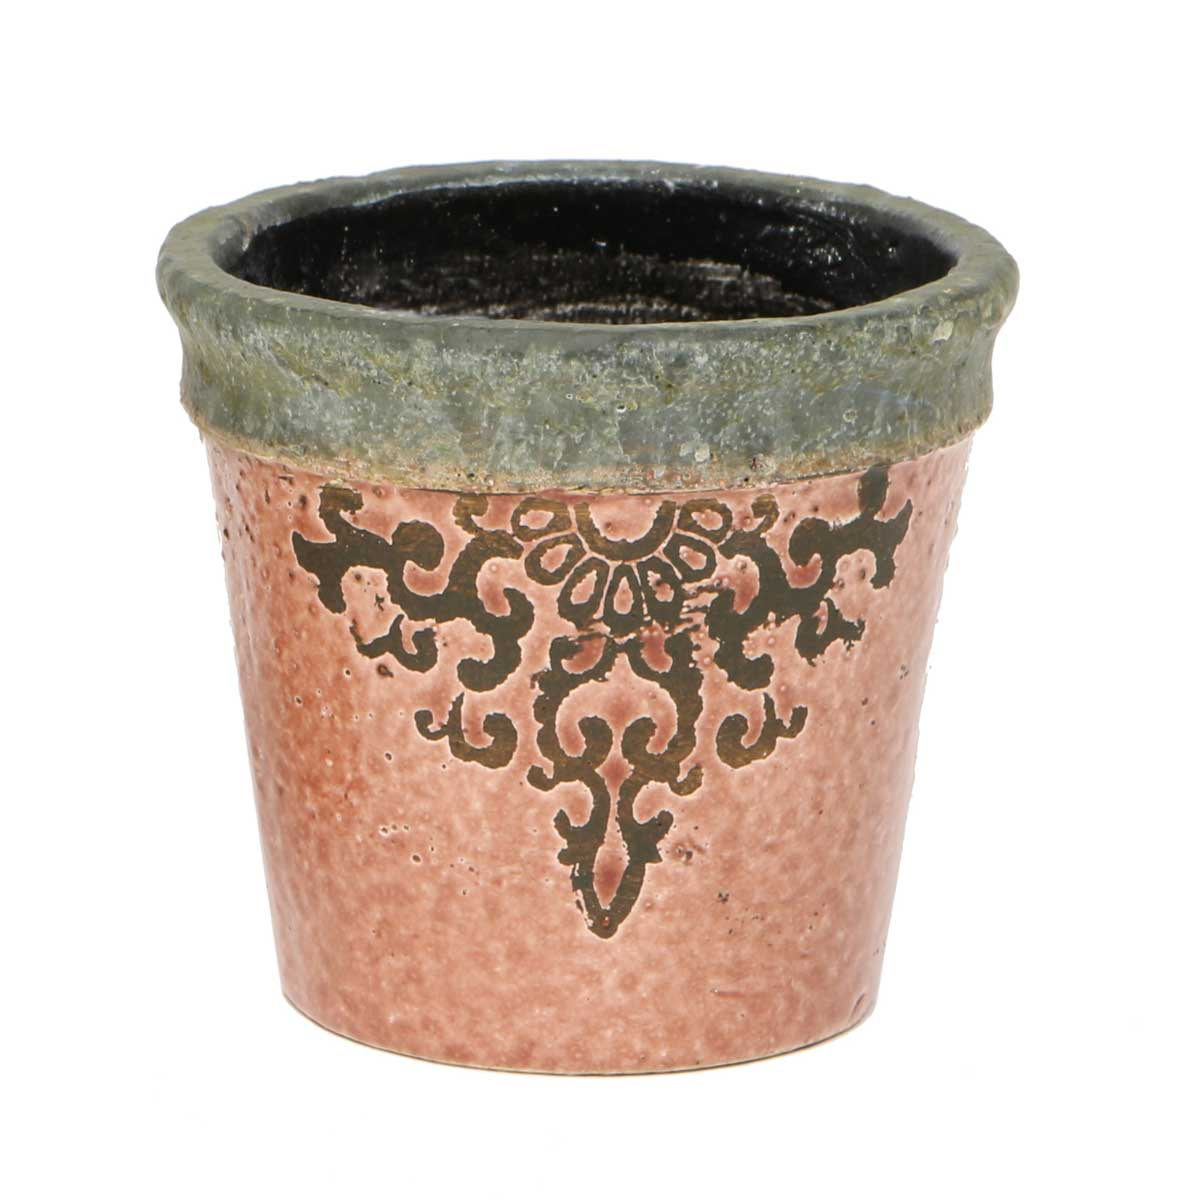 "Filigree Garden Pot Clay 5.5""x5.5"" A2062 CL v22"